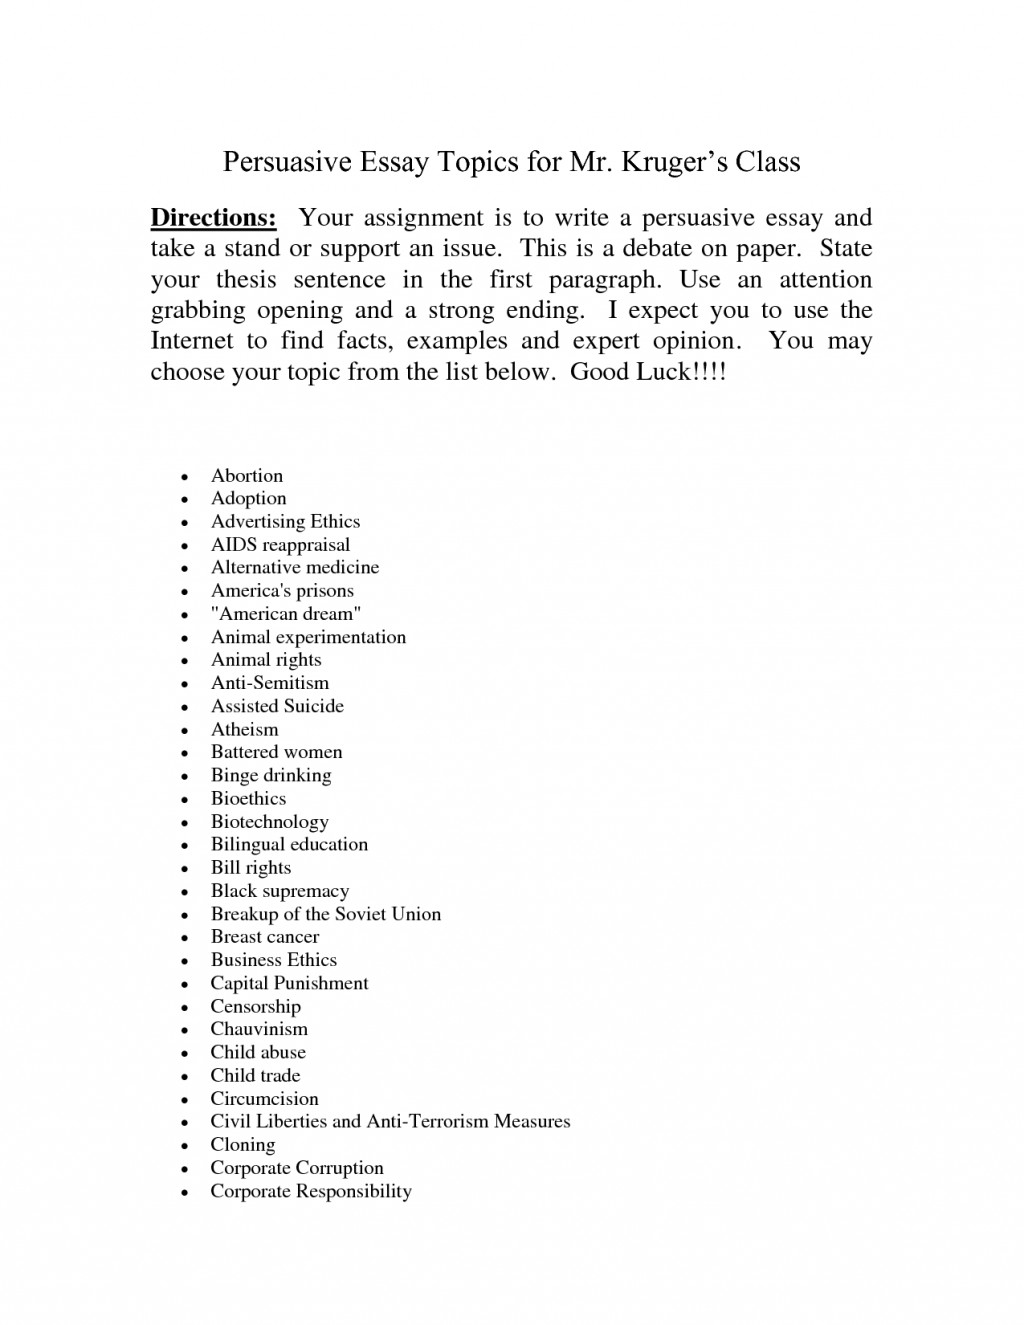 013 Argument Essay Student Samples Corporation Term Paper Writing List Of Argumentativepersuasive Topics Awesome Collection Strong Argumentative Best Topic Great College Good Research Gatsby Beautiful Persuasive 2017 Speech For Top 10 Large